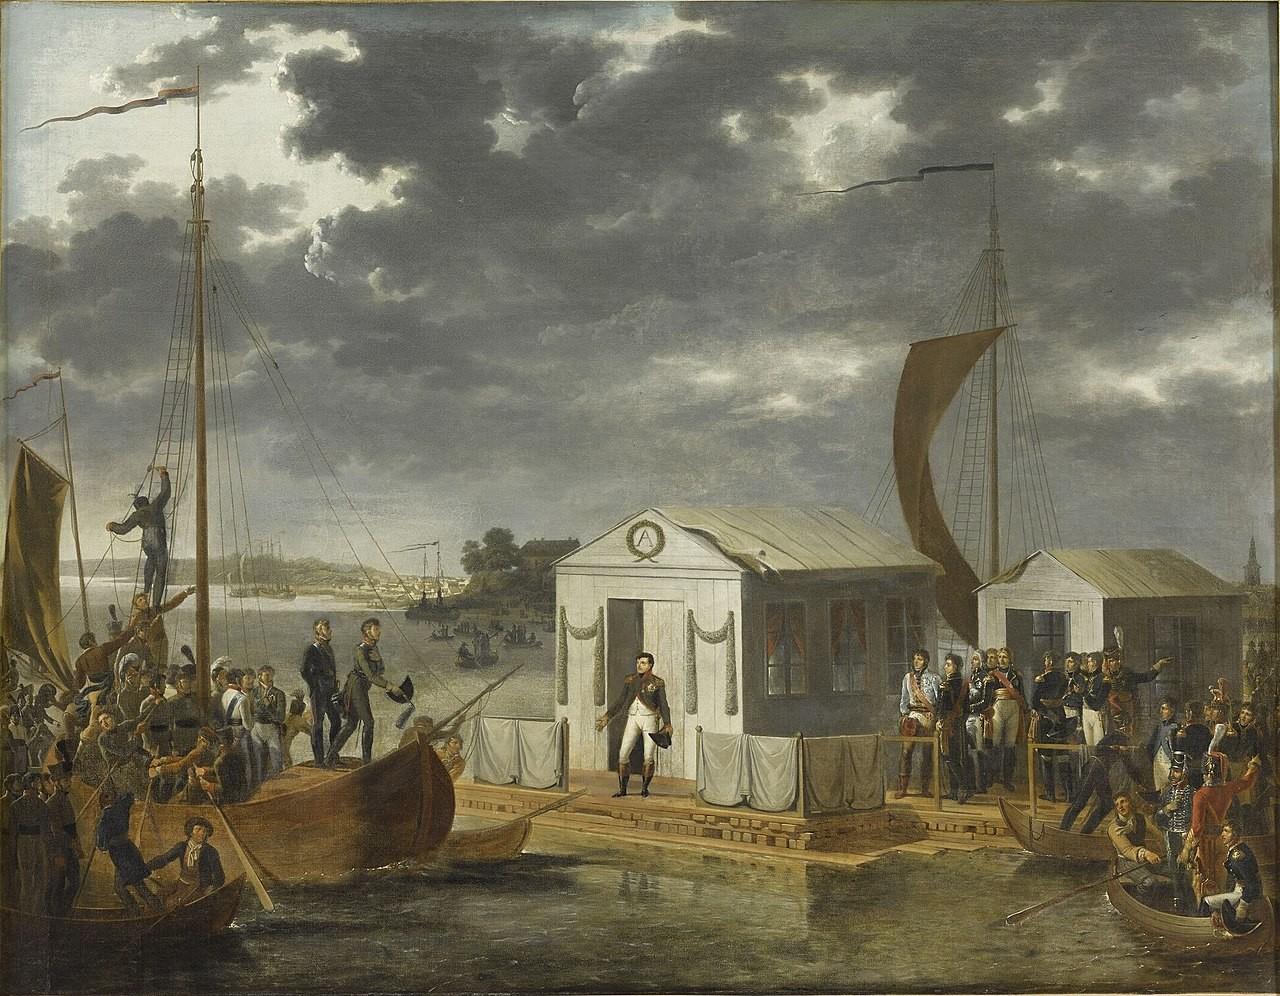 The meeting of Napoleon I and Alexander I on the Neman river, June 25th, 1807 (Treaty of Tilsit), by Adolph Roehn